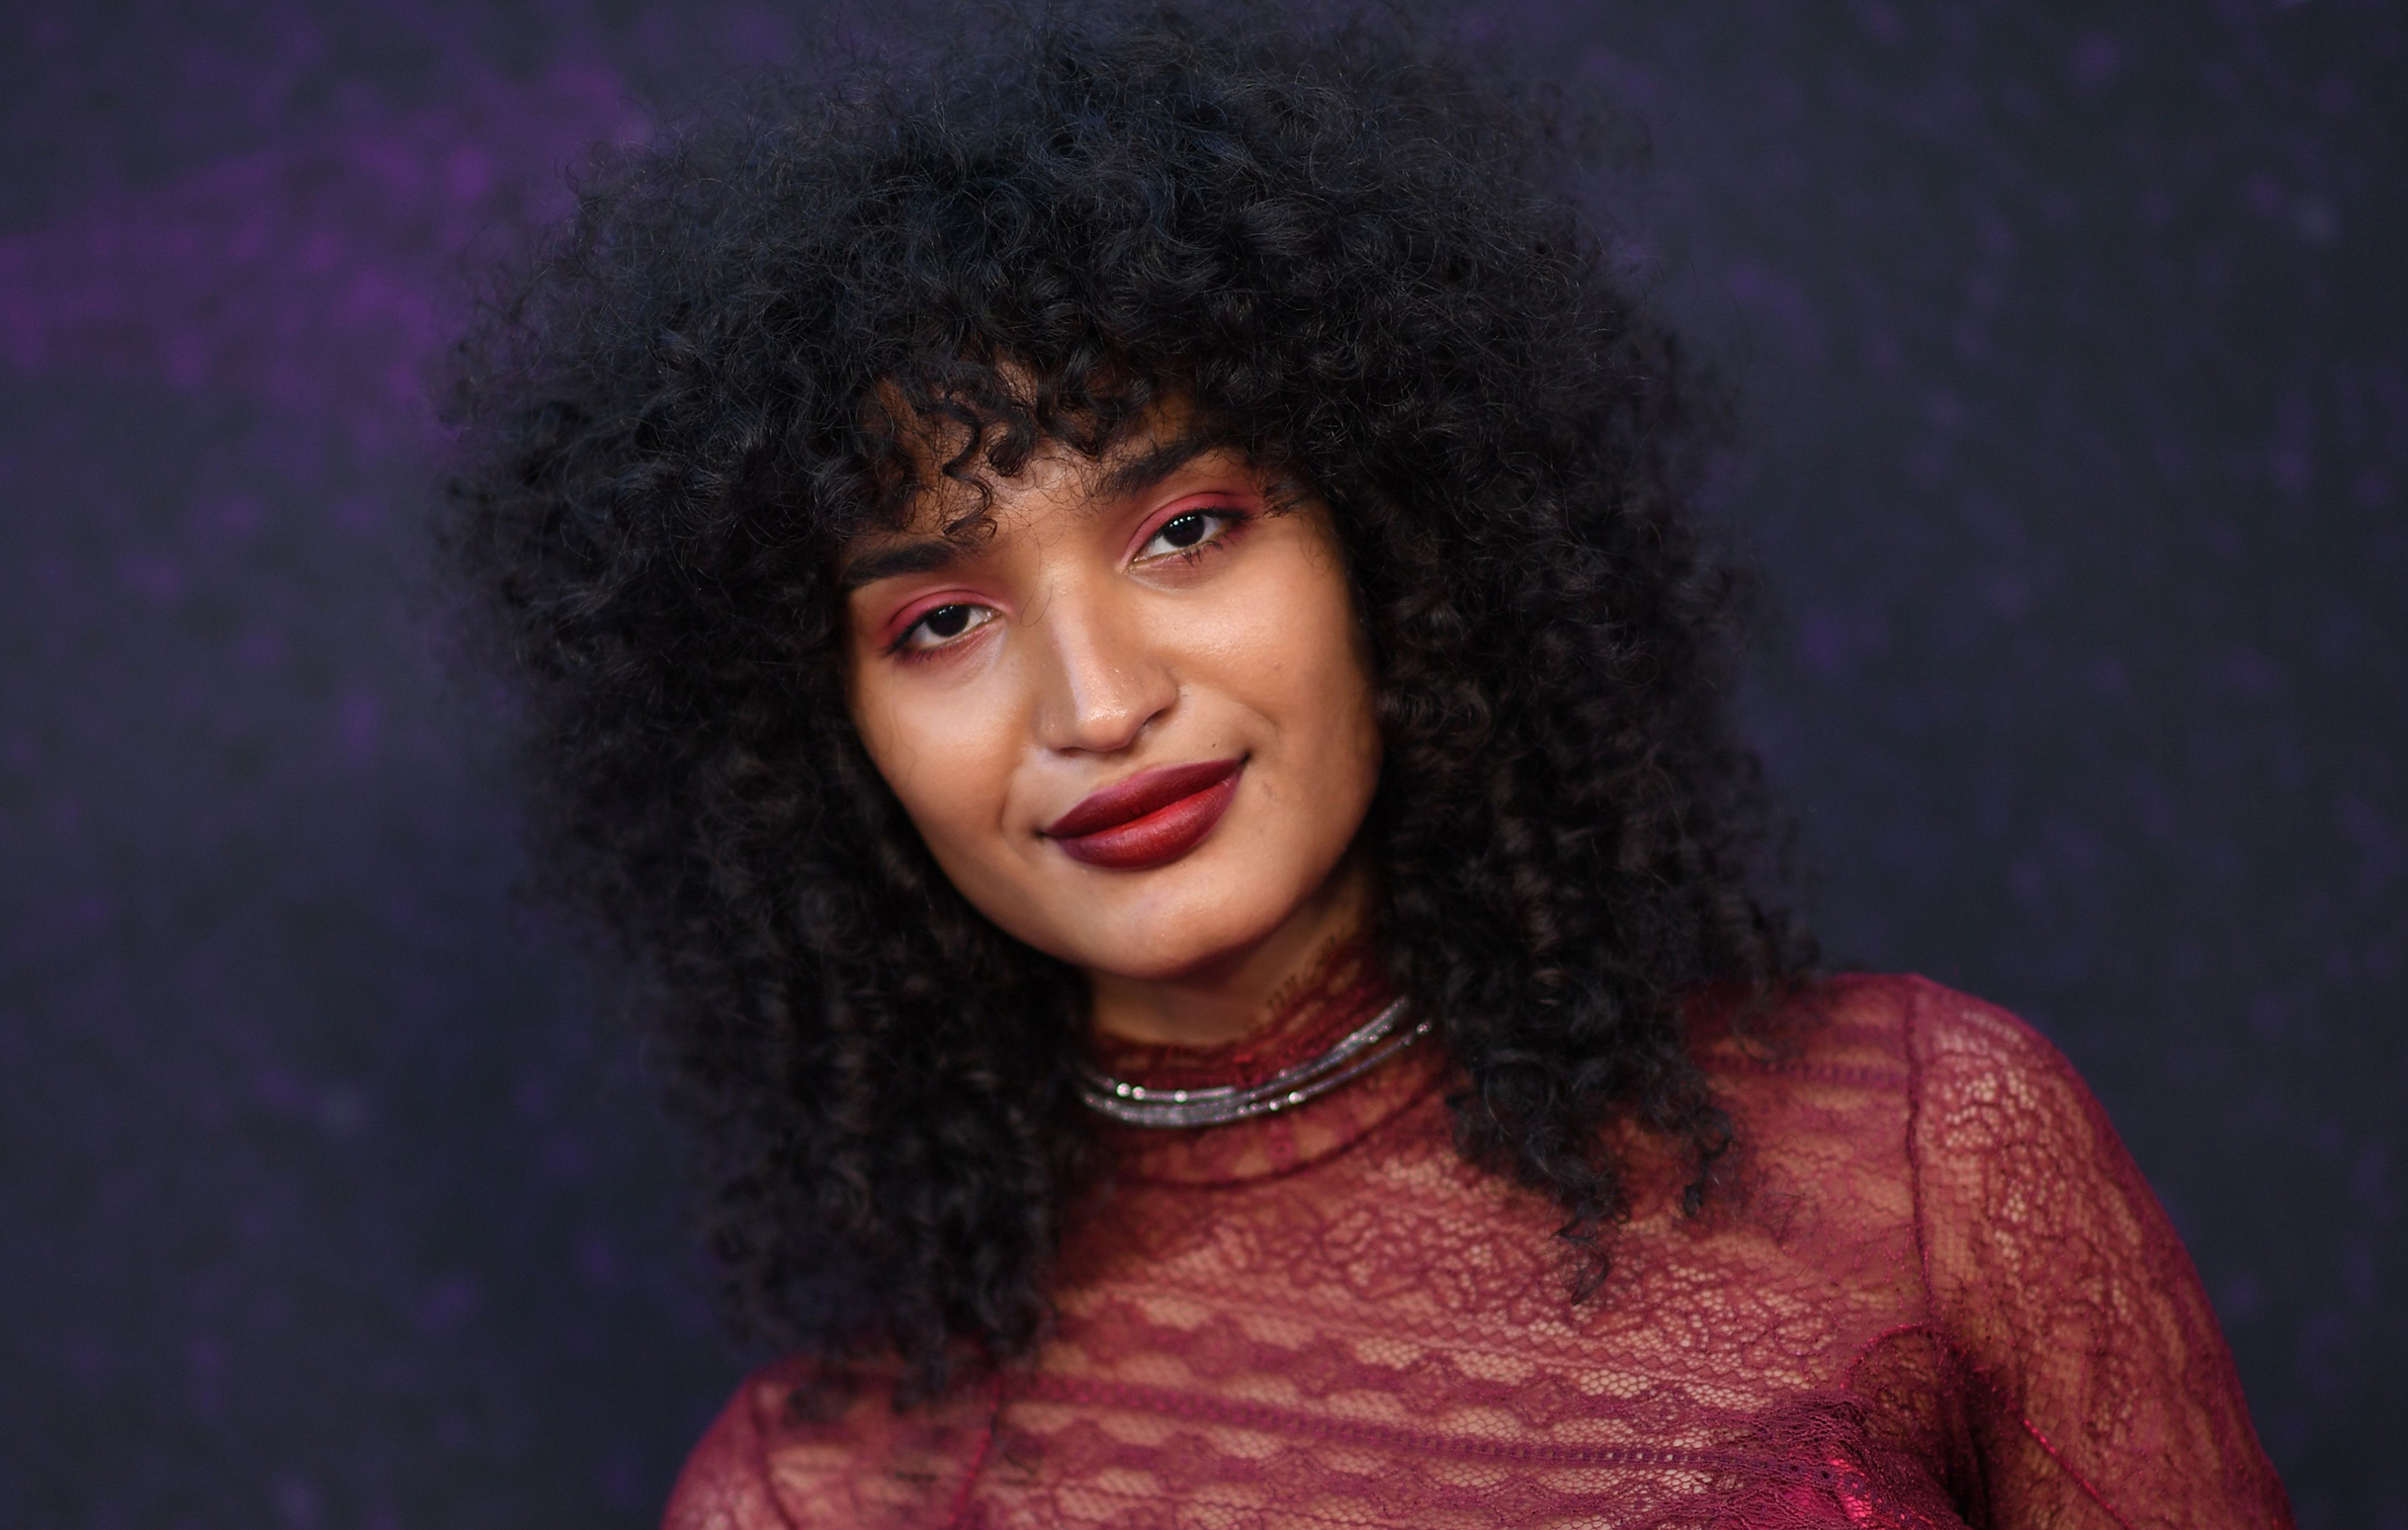 Pose' star Indya Moore is spreading holiday cheer to trans youth